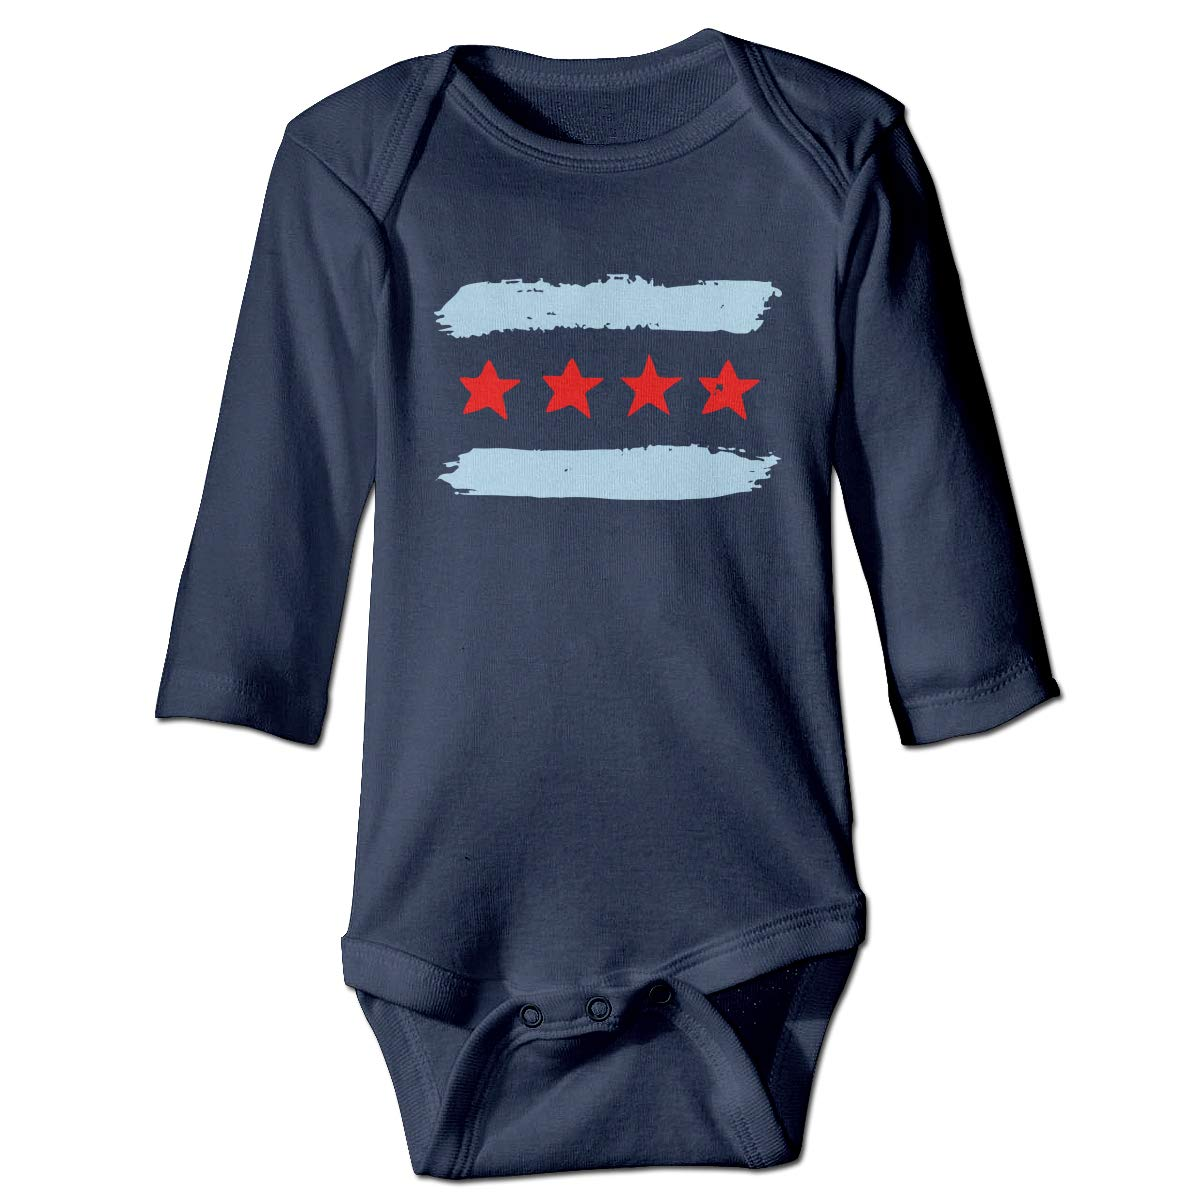 A14UBP Infant Baby Boys Girls Long Sleeve Jumpsuit Romper Chicago Skyline Unisex Button Playsuit Outfit Clothes